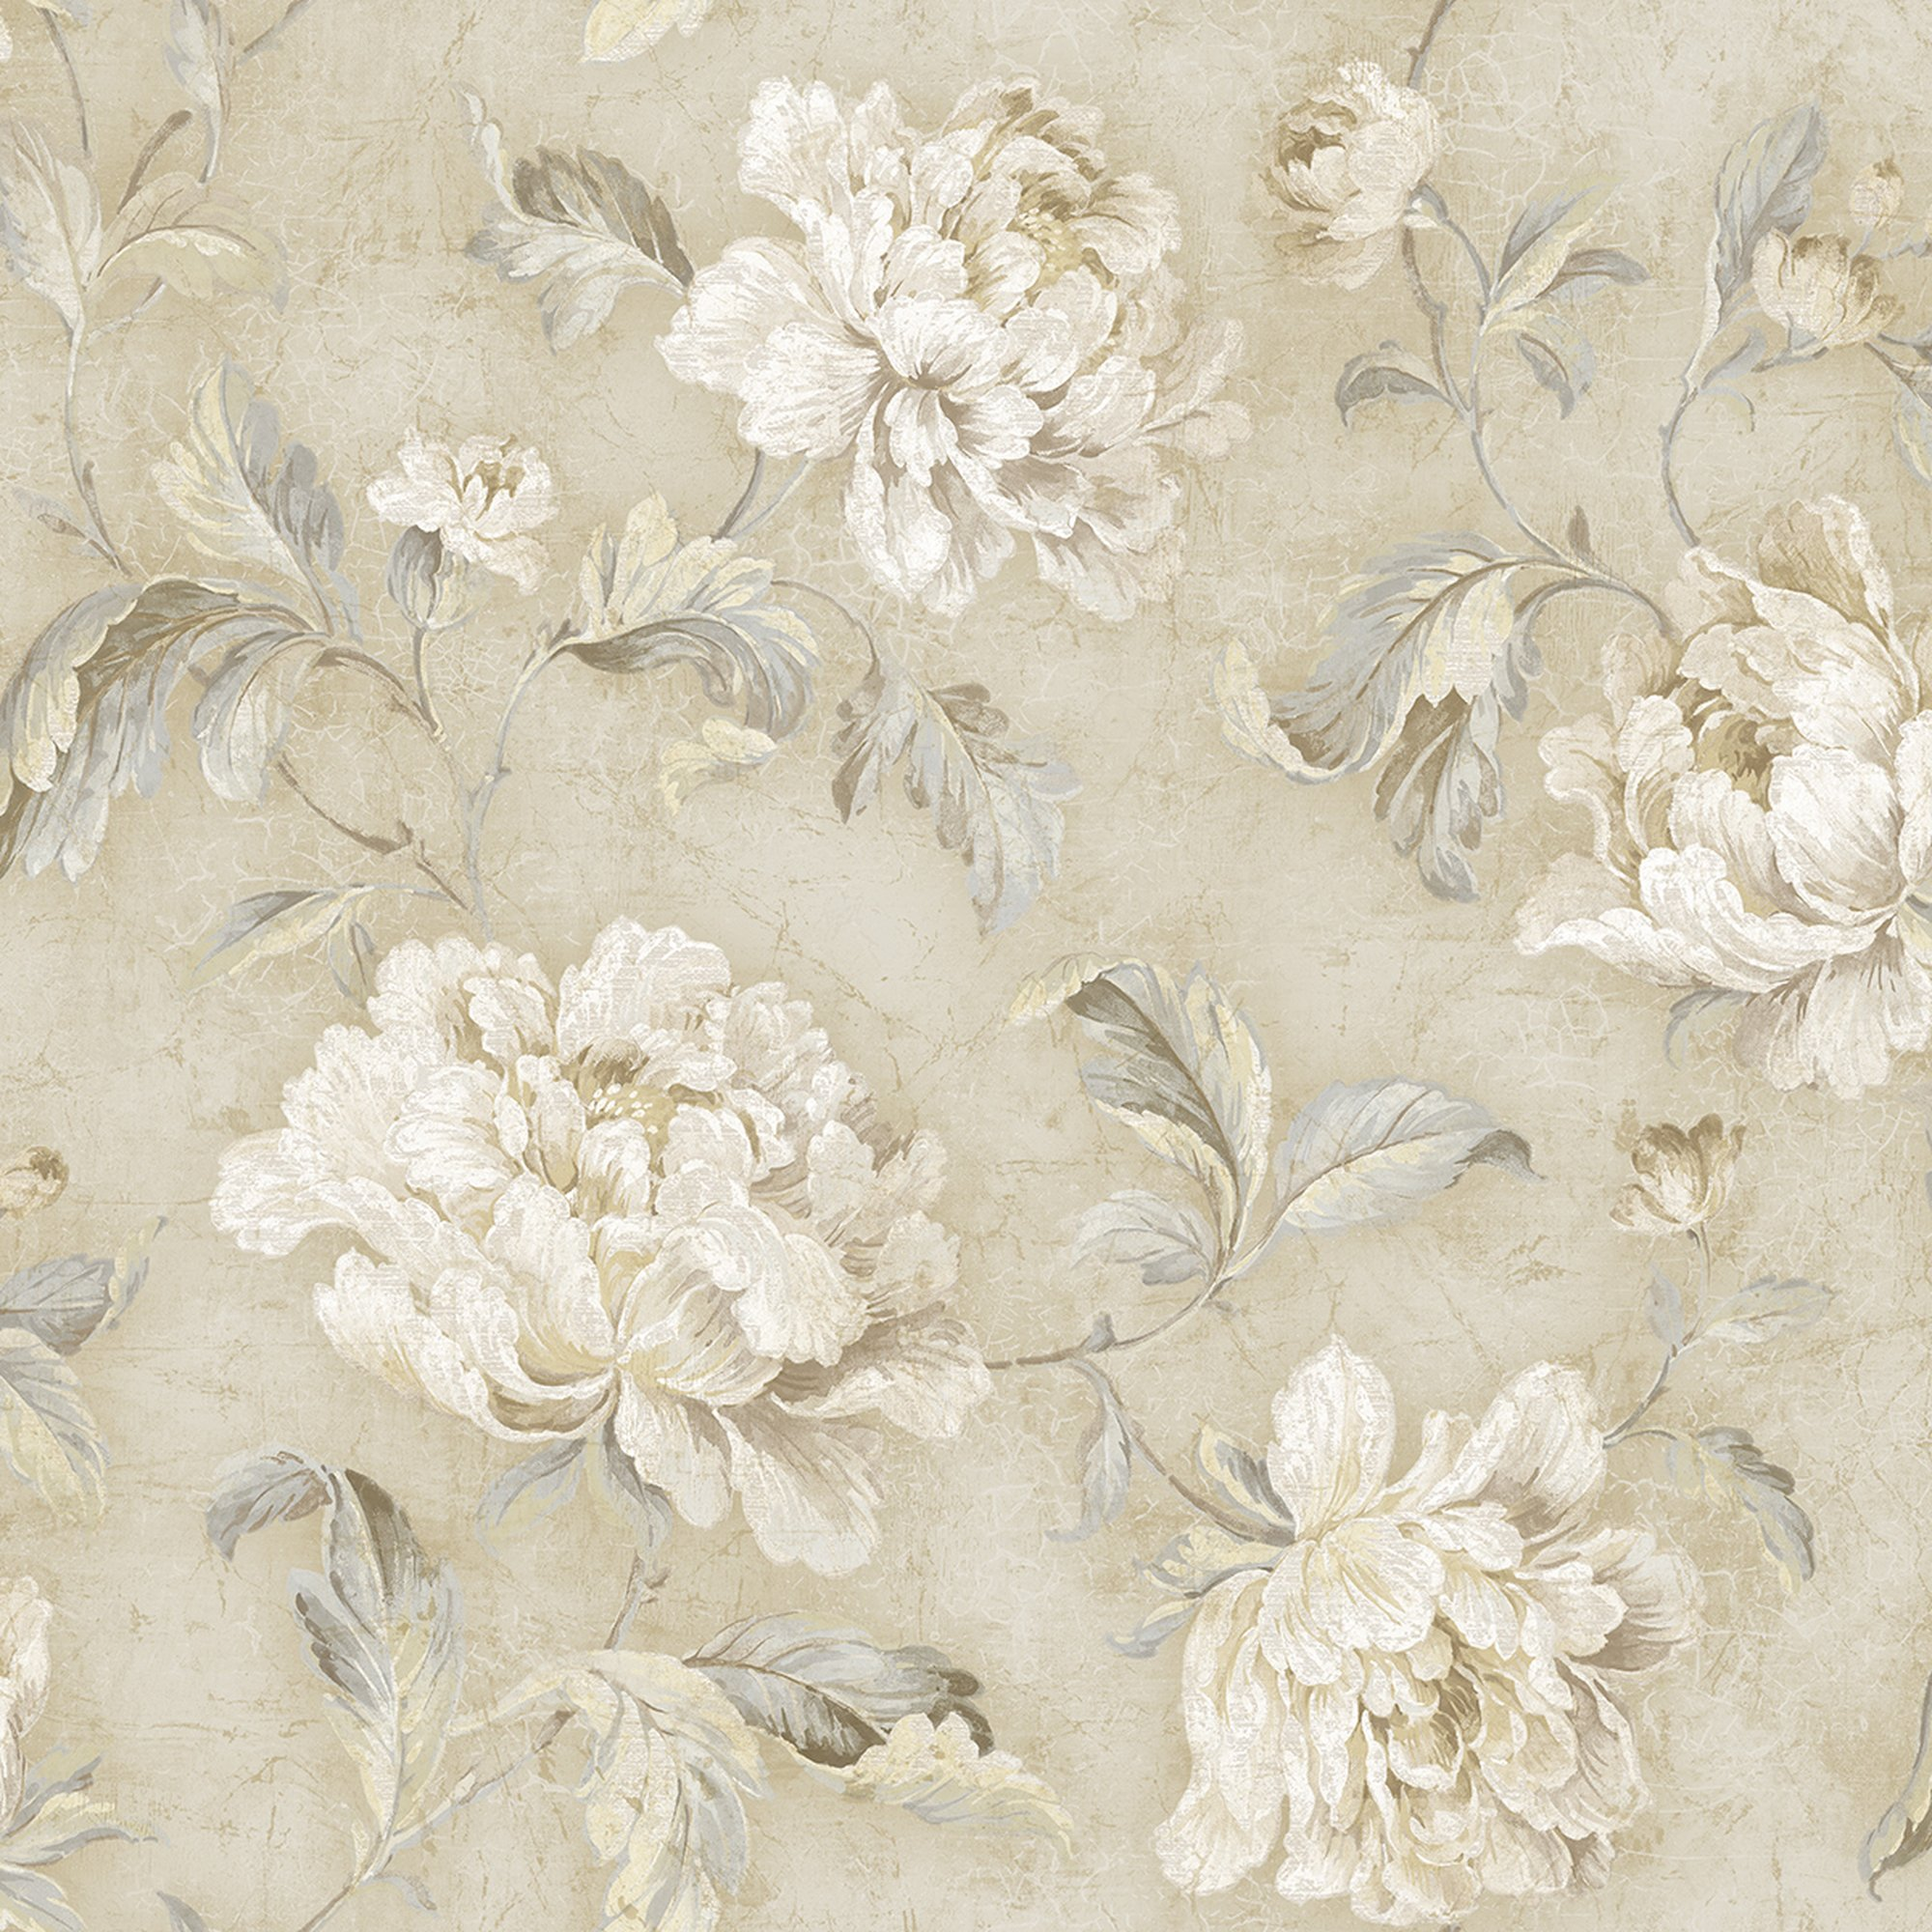 Vintage Floral Trail Wallpaper In Sand Mv81507 From Wallquest Ebay